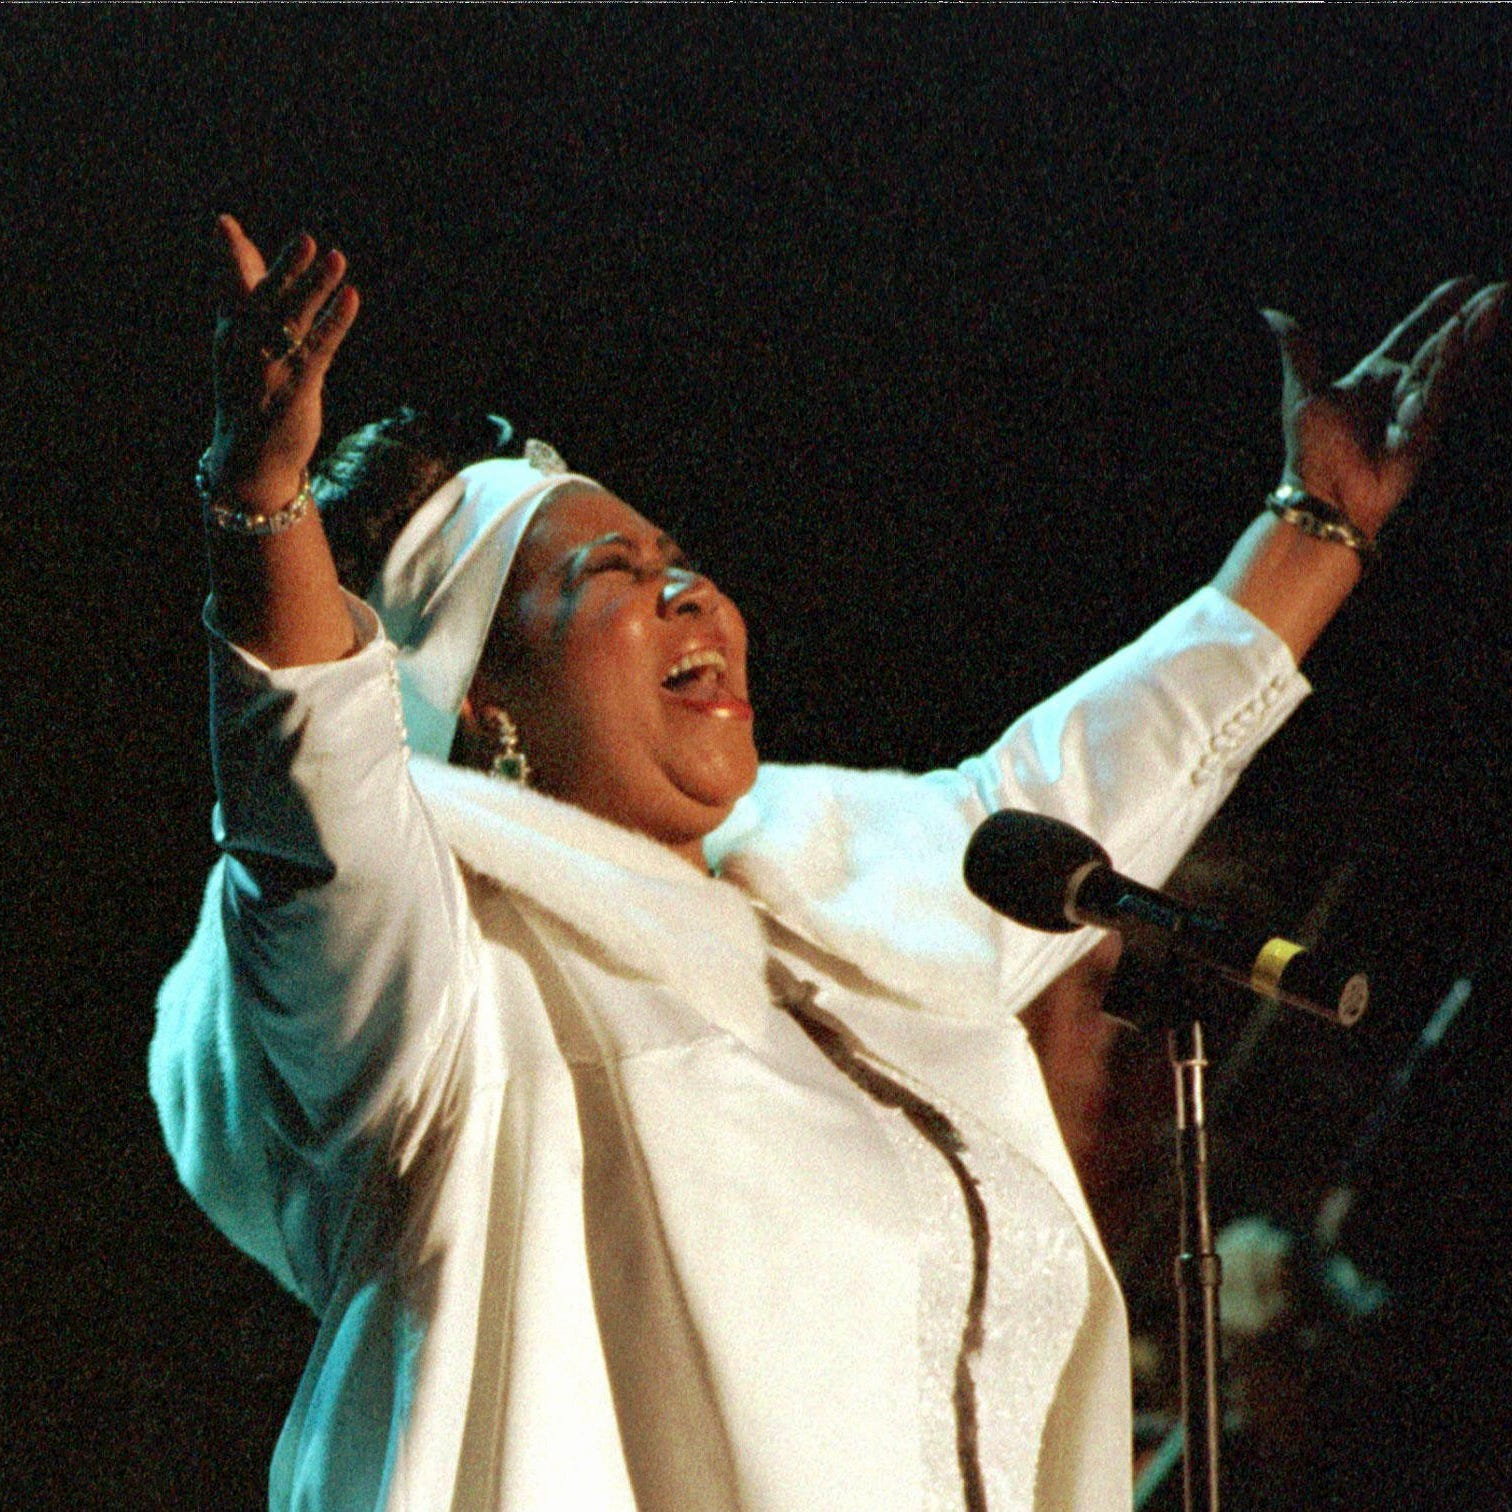 Pulitzer exec on Aretha Franklin's award: Queen of Soul 'reflects the best of the best'